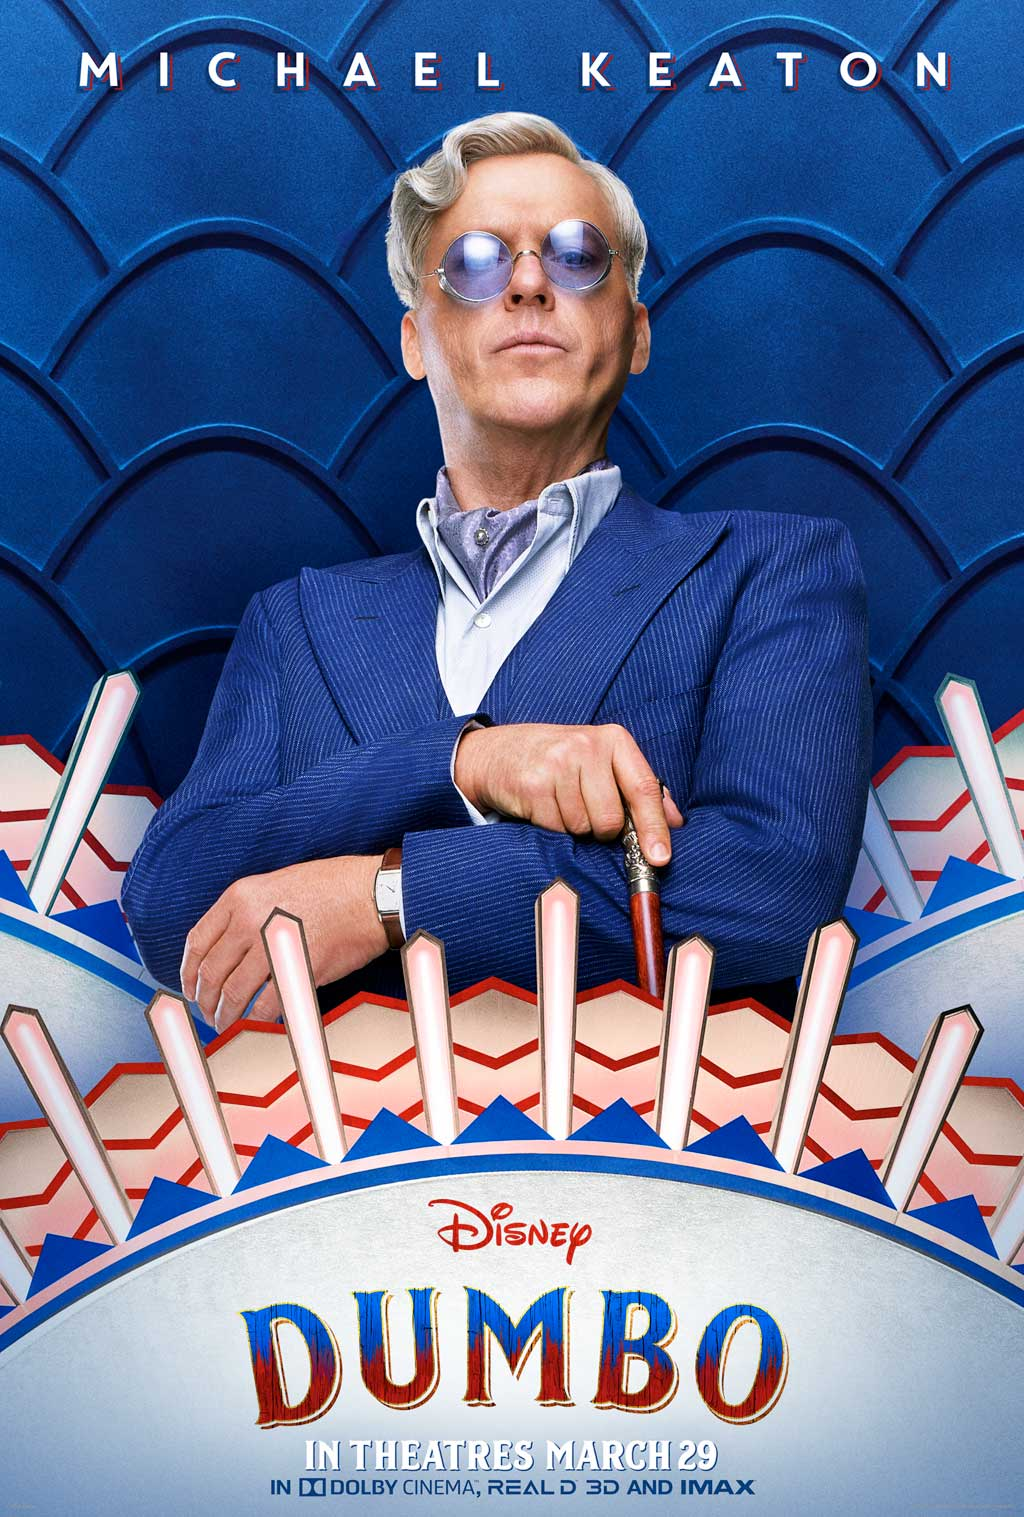 V.A. Vandevere (Michael Keaton), an entrepreneur and proprietor behind a state-of-the-art amusement utopia called Dreamland